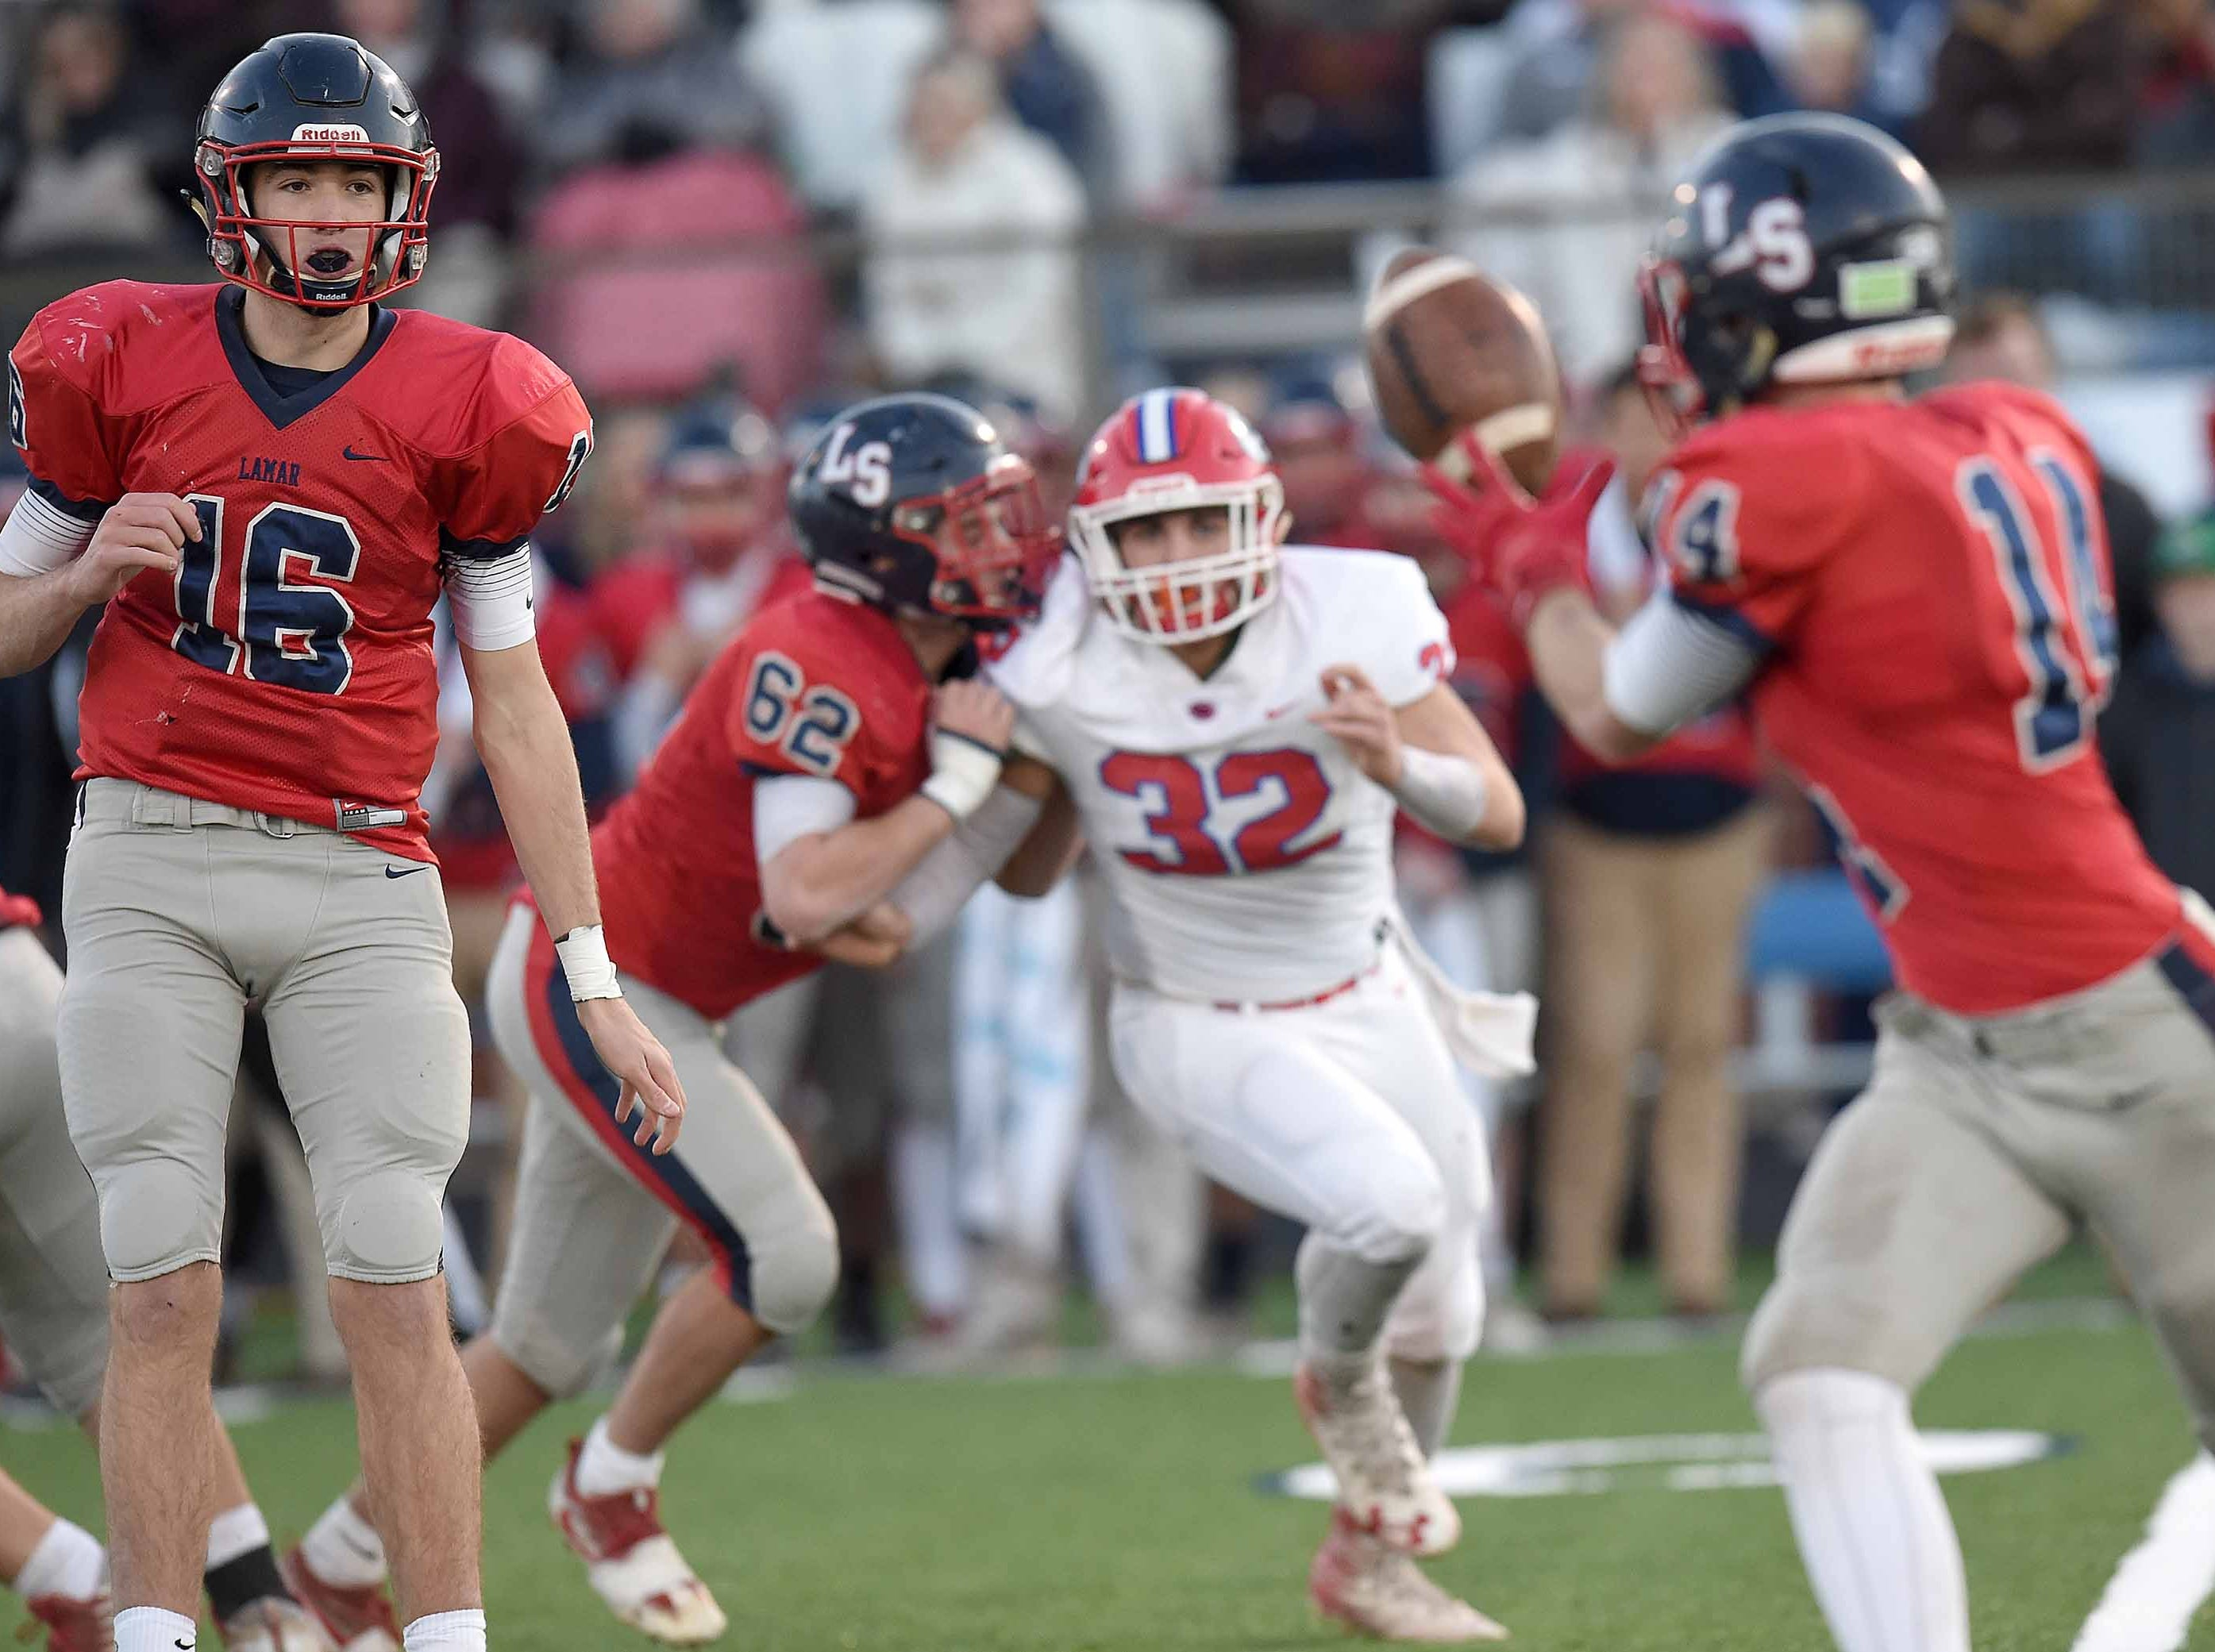 Lamar School's Joseph Hutchinson (16) pitches the ball to Jake Ransier (14) against Simpson Academy on Thursday, November 15, 2018, in the MAIS Class AAAA-D2 Football Championship at Jackson Academy in Jackson, Miss.